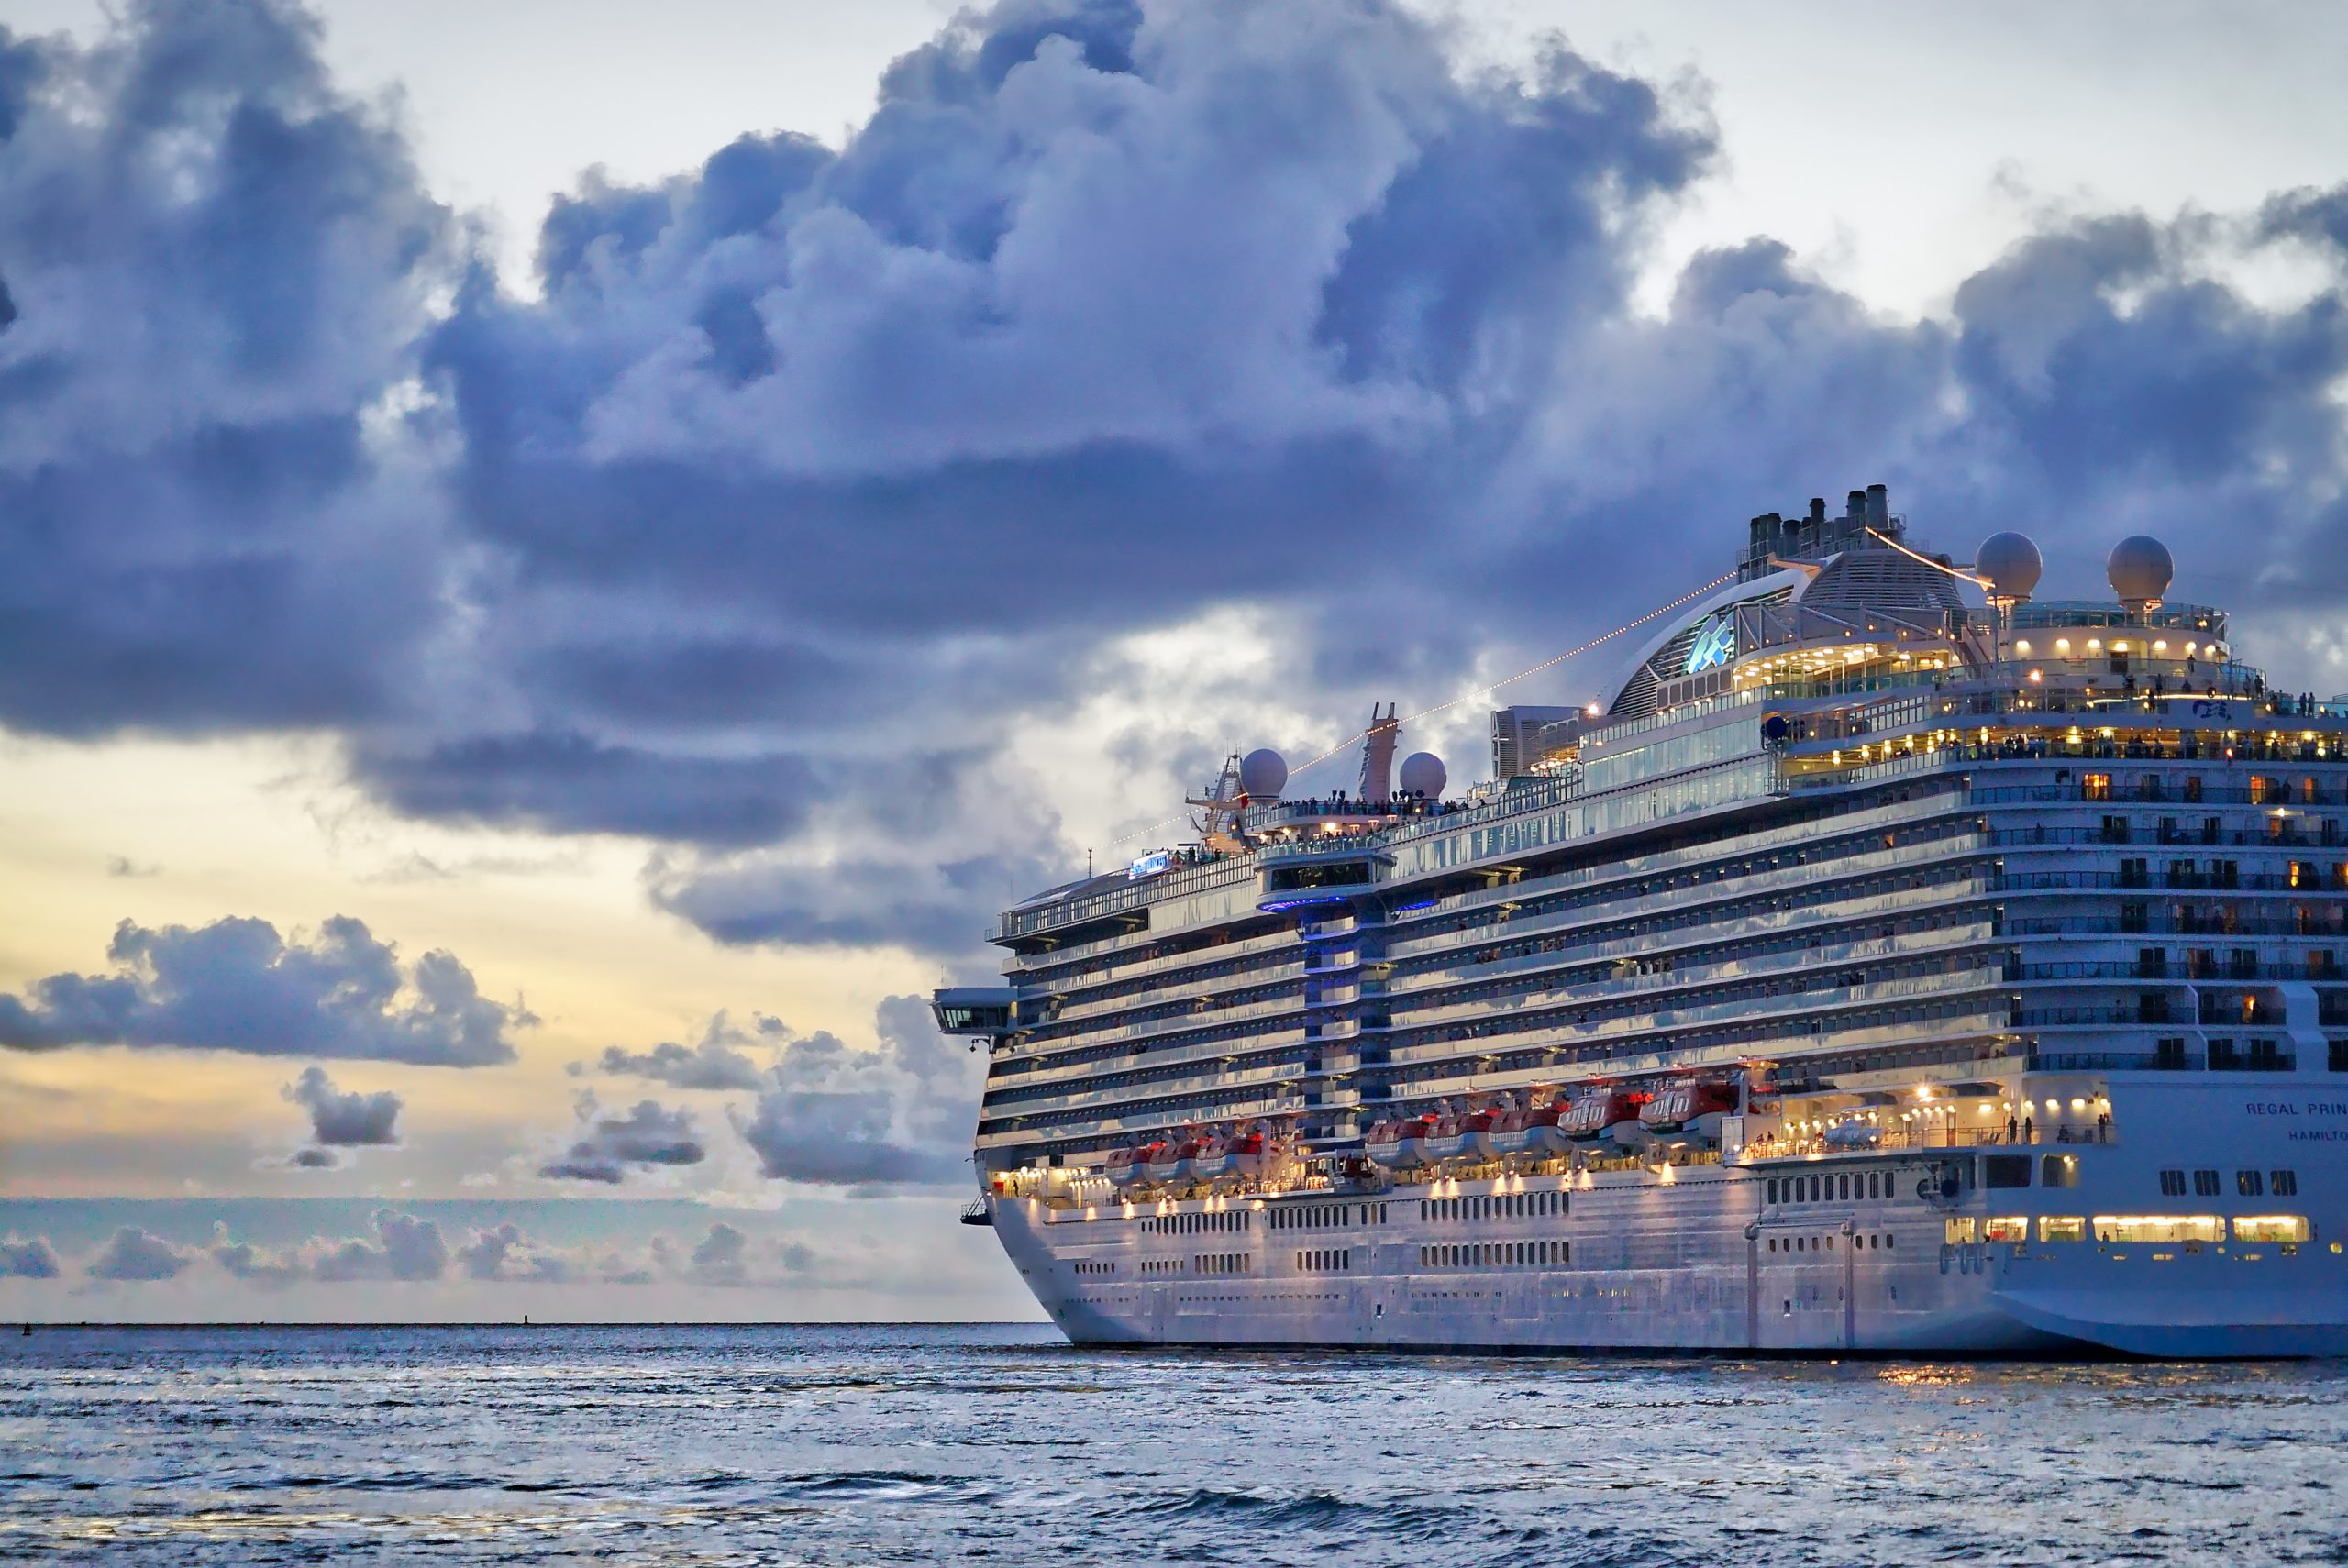 How To Get A Free 5 Night Cruise Vacation With Credit Card Points